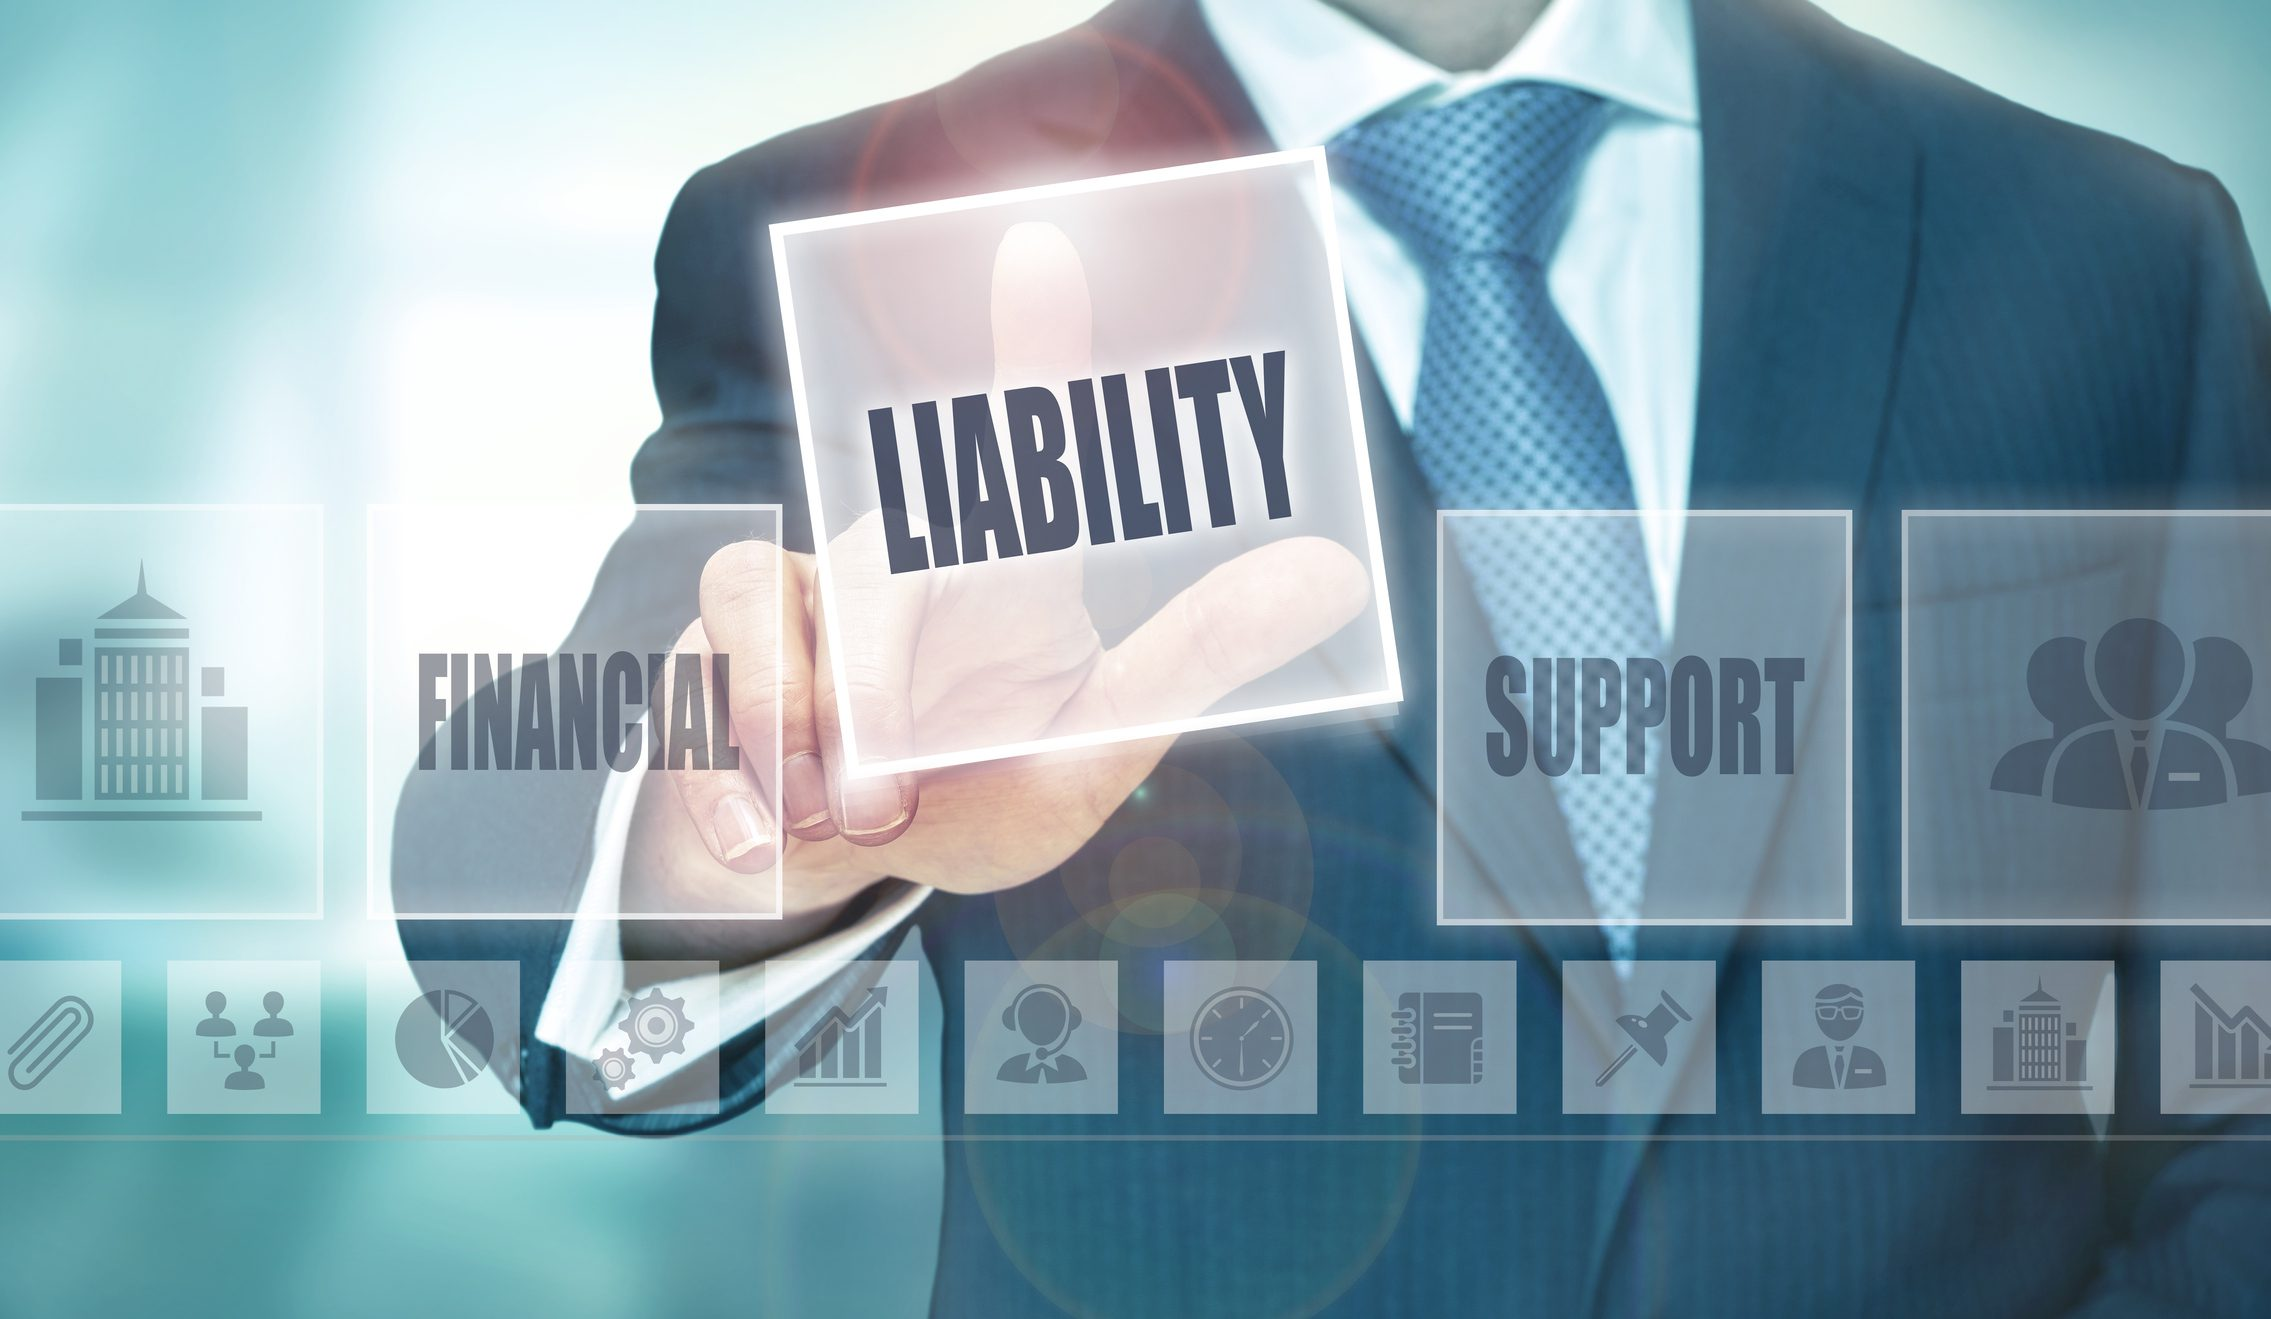 Small Firms Saddled with Majority of Tort Liability Costs